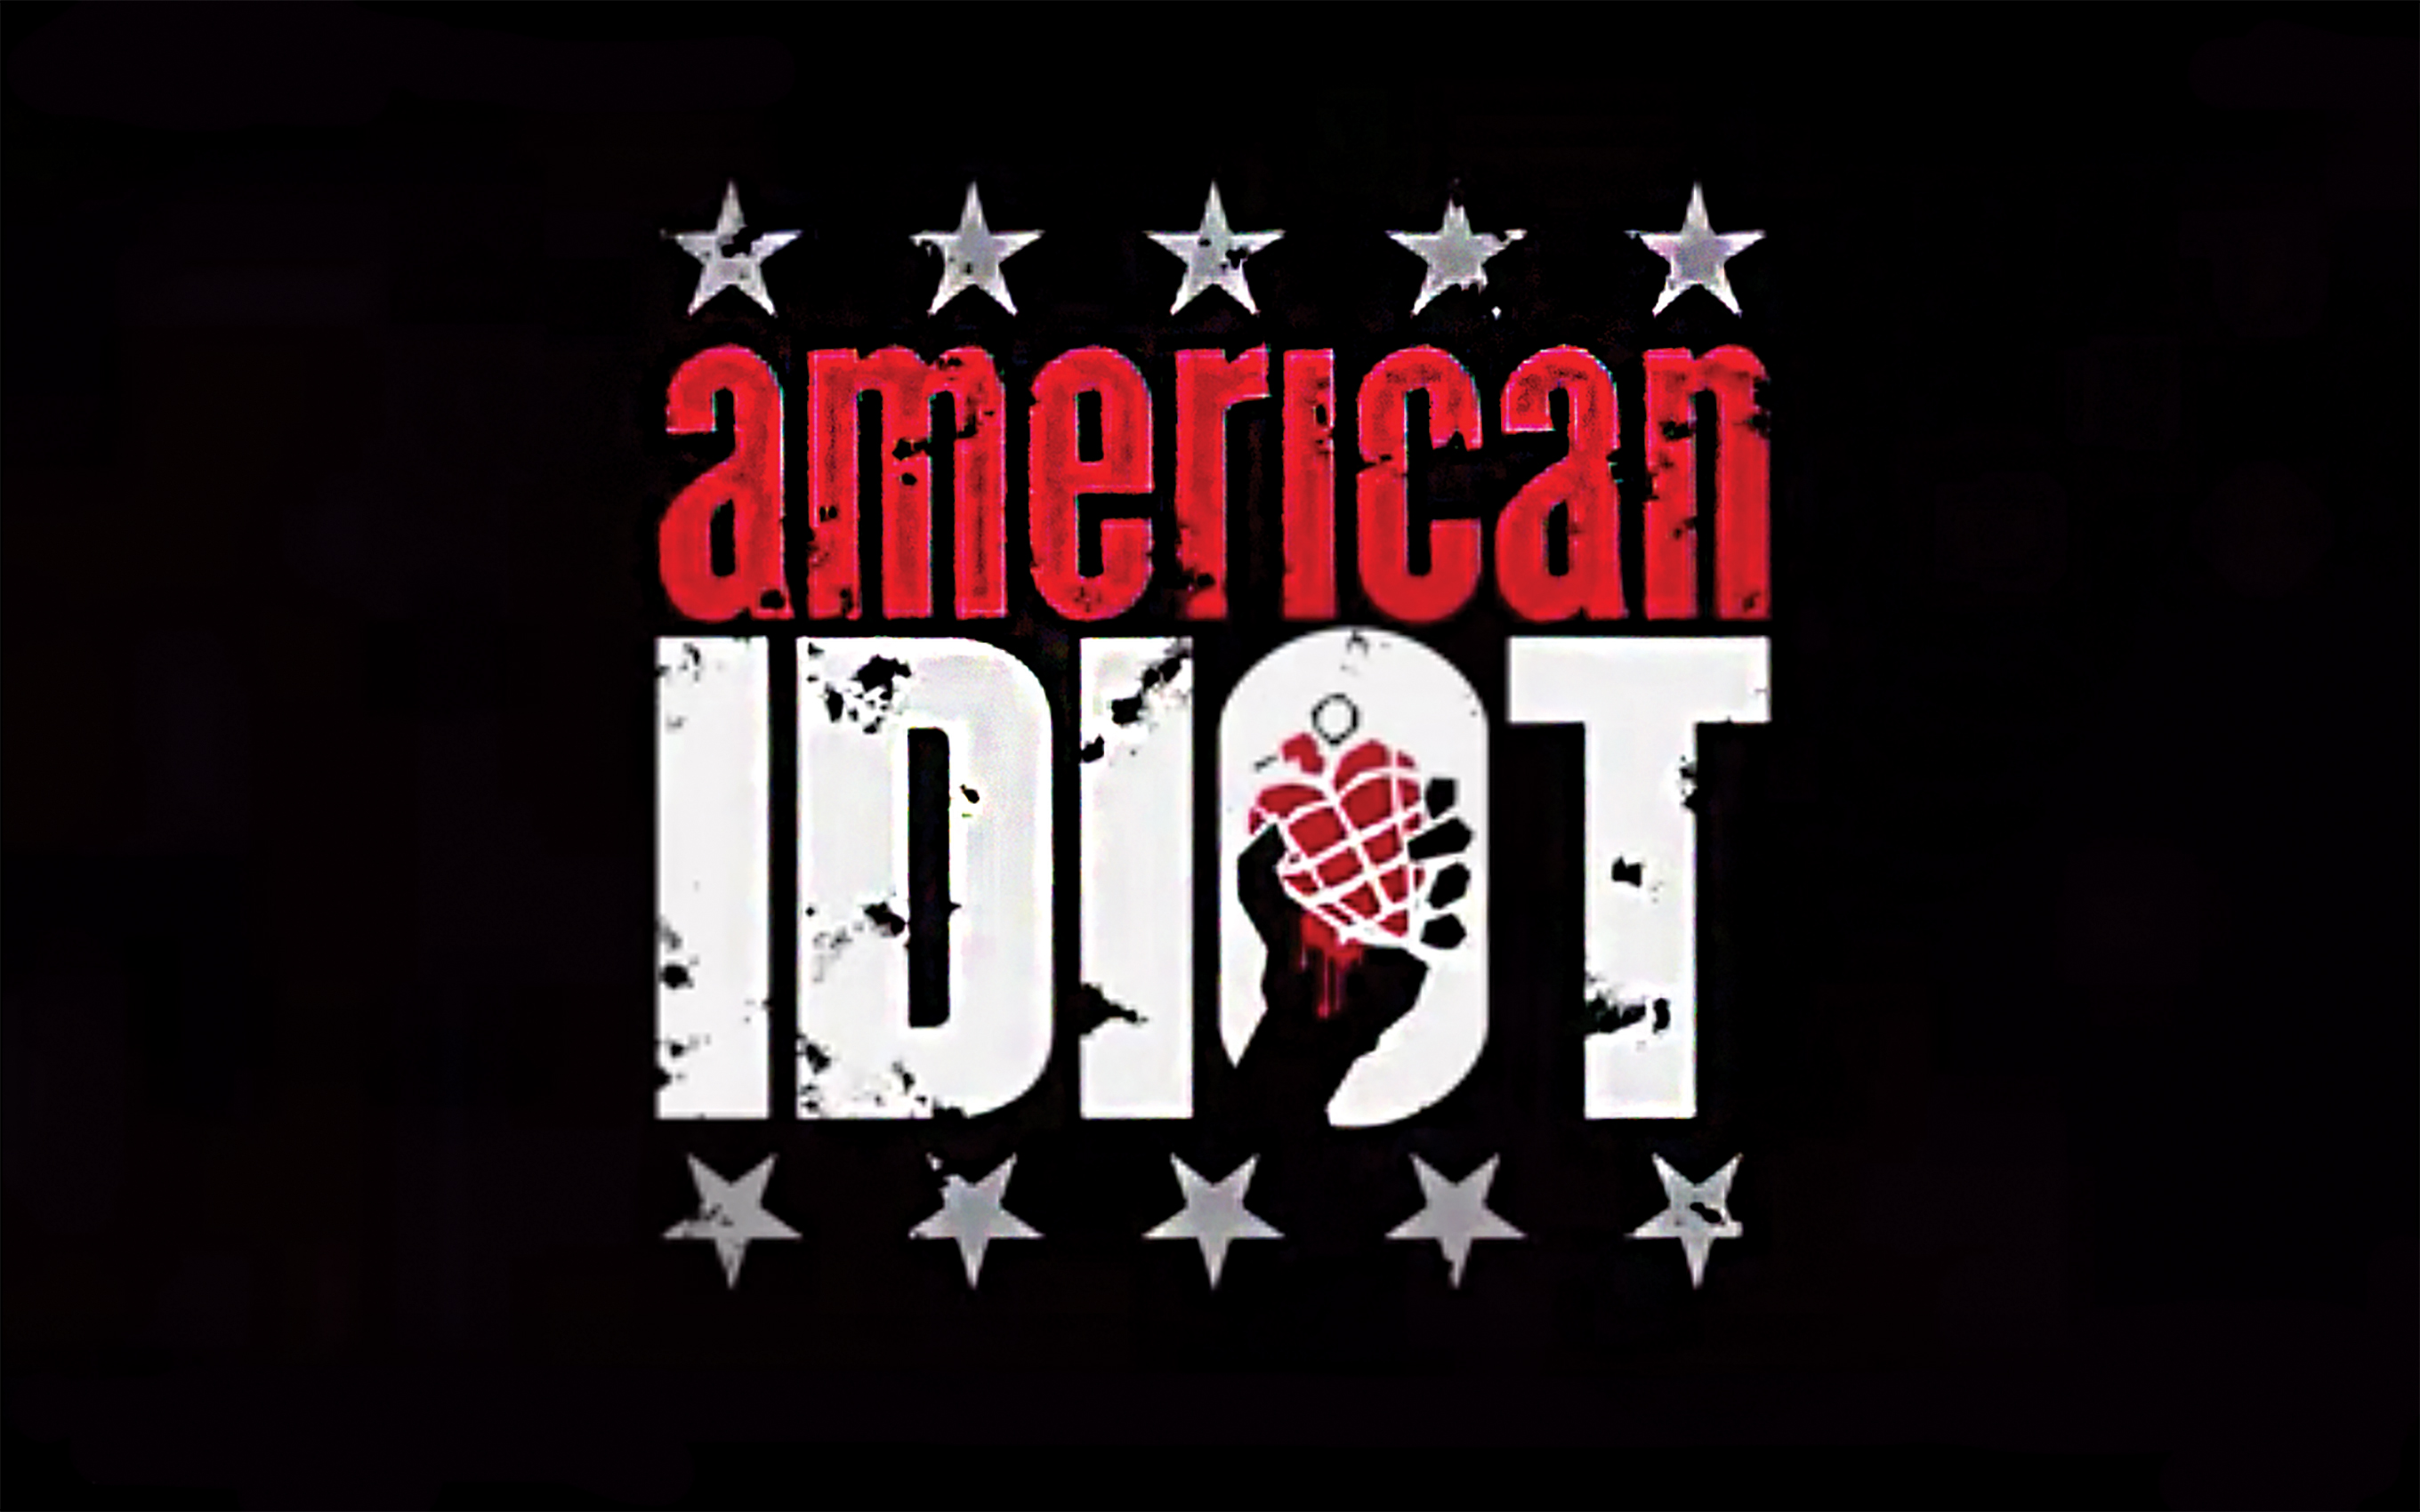 WEB_A&C_UOMTS_American_Idiot_cred_via_Youtube,Katie_Moroz